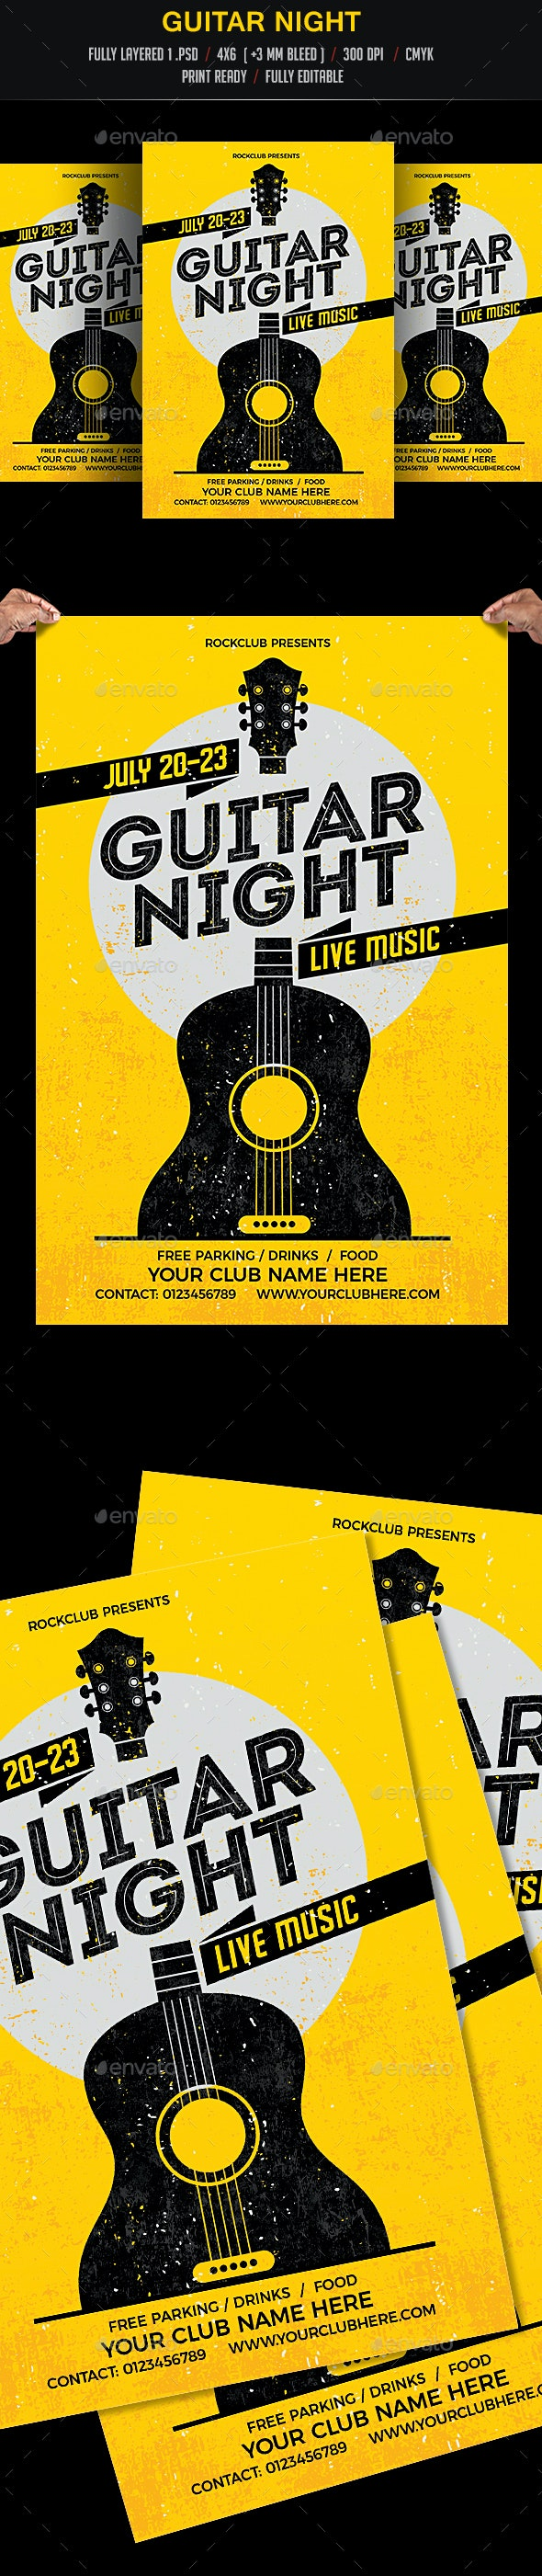 Guitar Night Flyer - Clubs & Parties Events